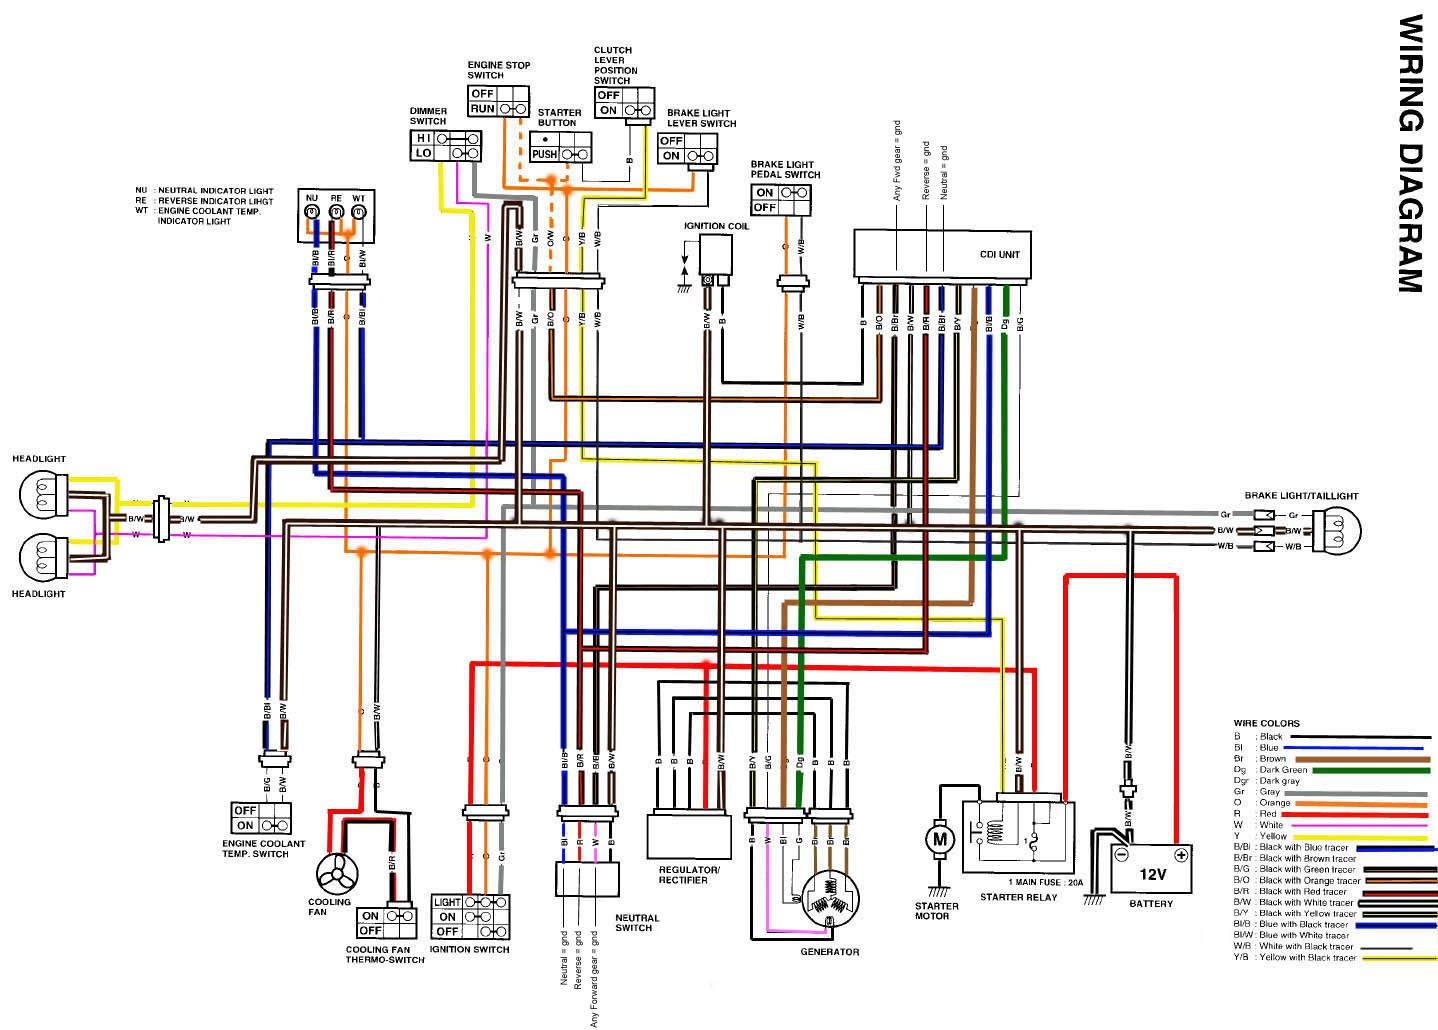 yamaha atv wiring diagram for starters gr 6875  yamaha kodiak 450 wiring diagram wiring harness wiring  yamaha kodiak 450 wiring diagram wiring